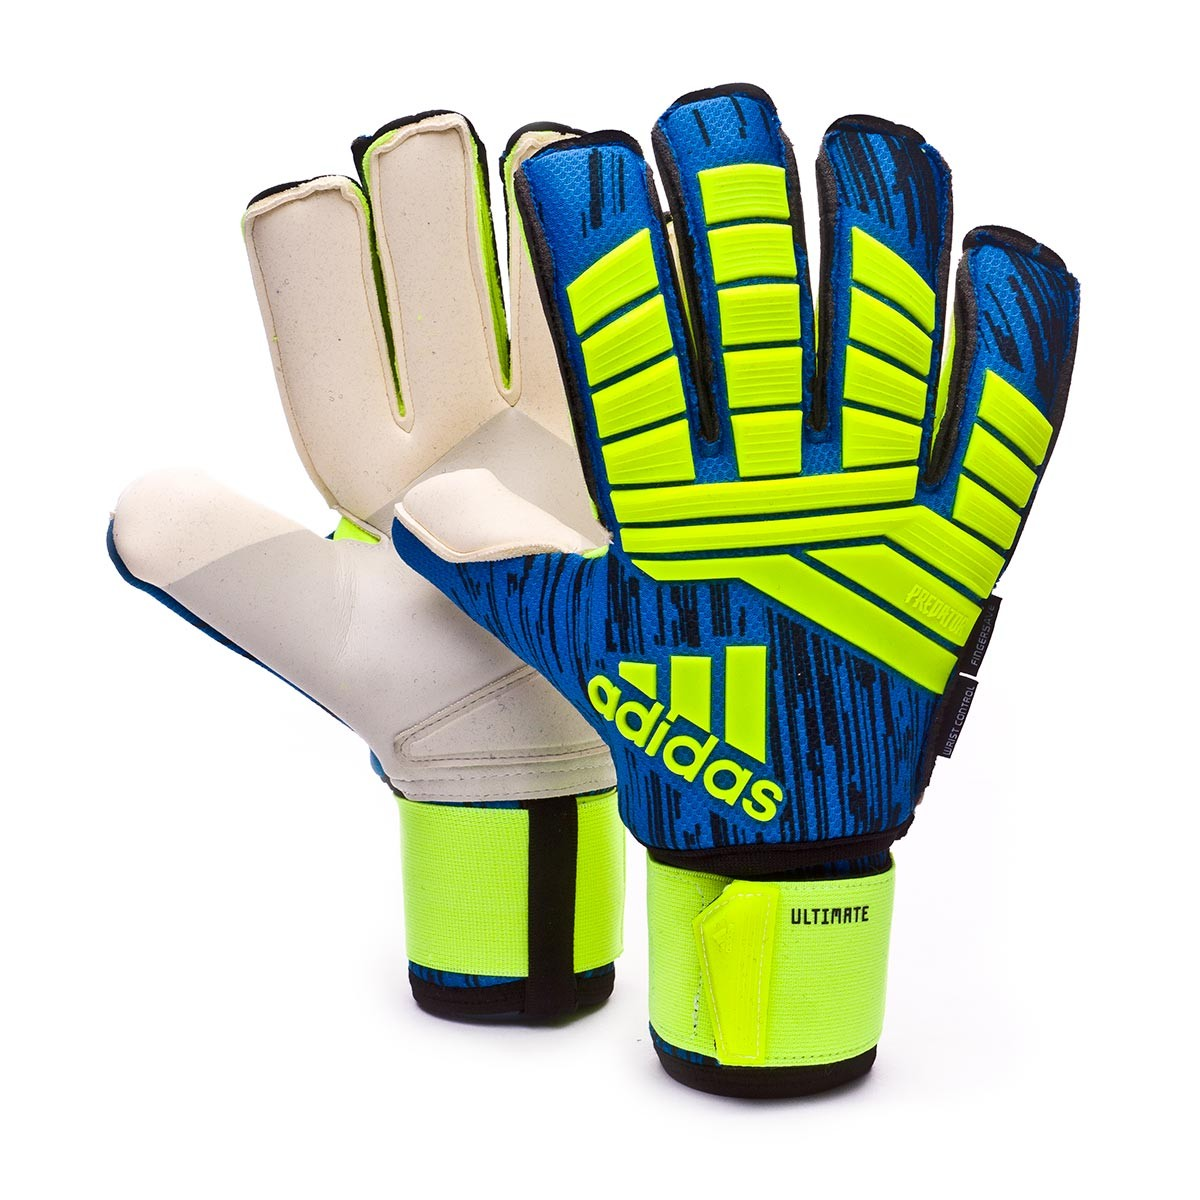 new styles 51482 22ab8 Glove adidas Predator Ultimate Solar yellow-Black-Football blue - Football  store Fútbol Emotion